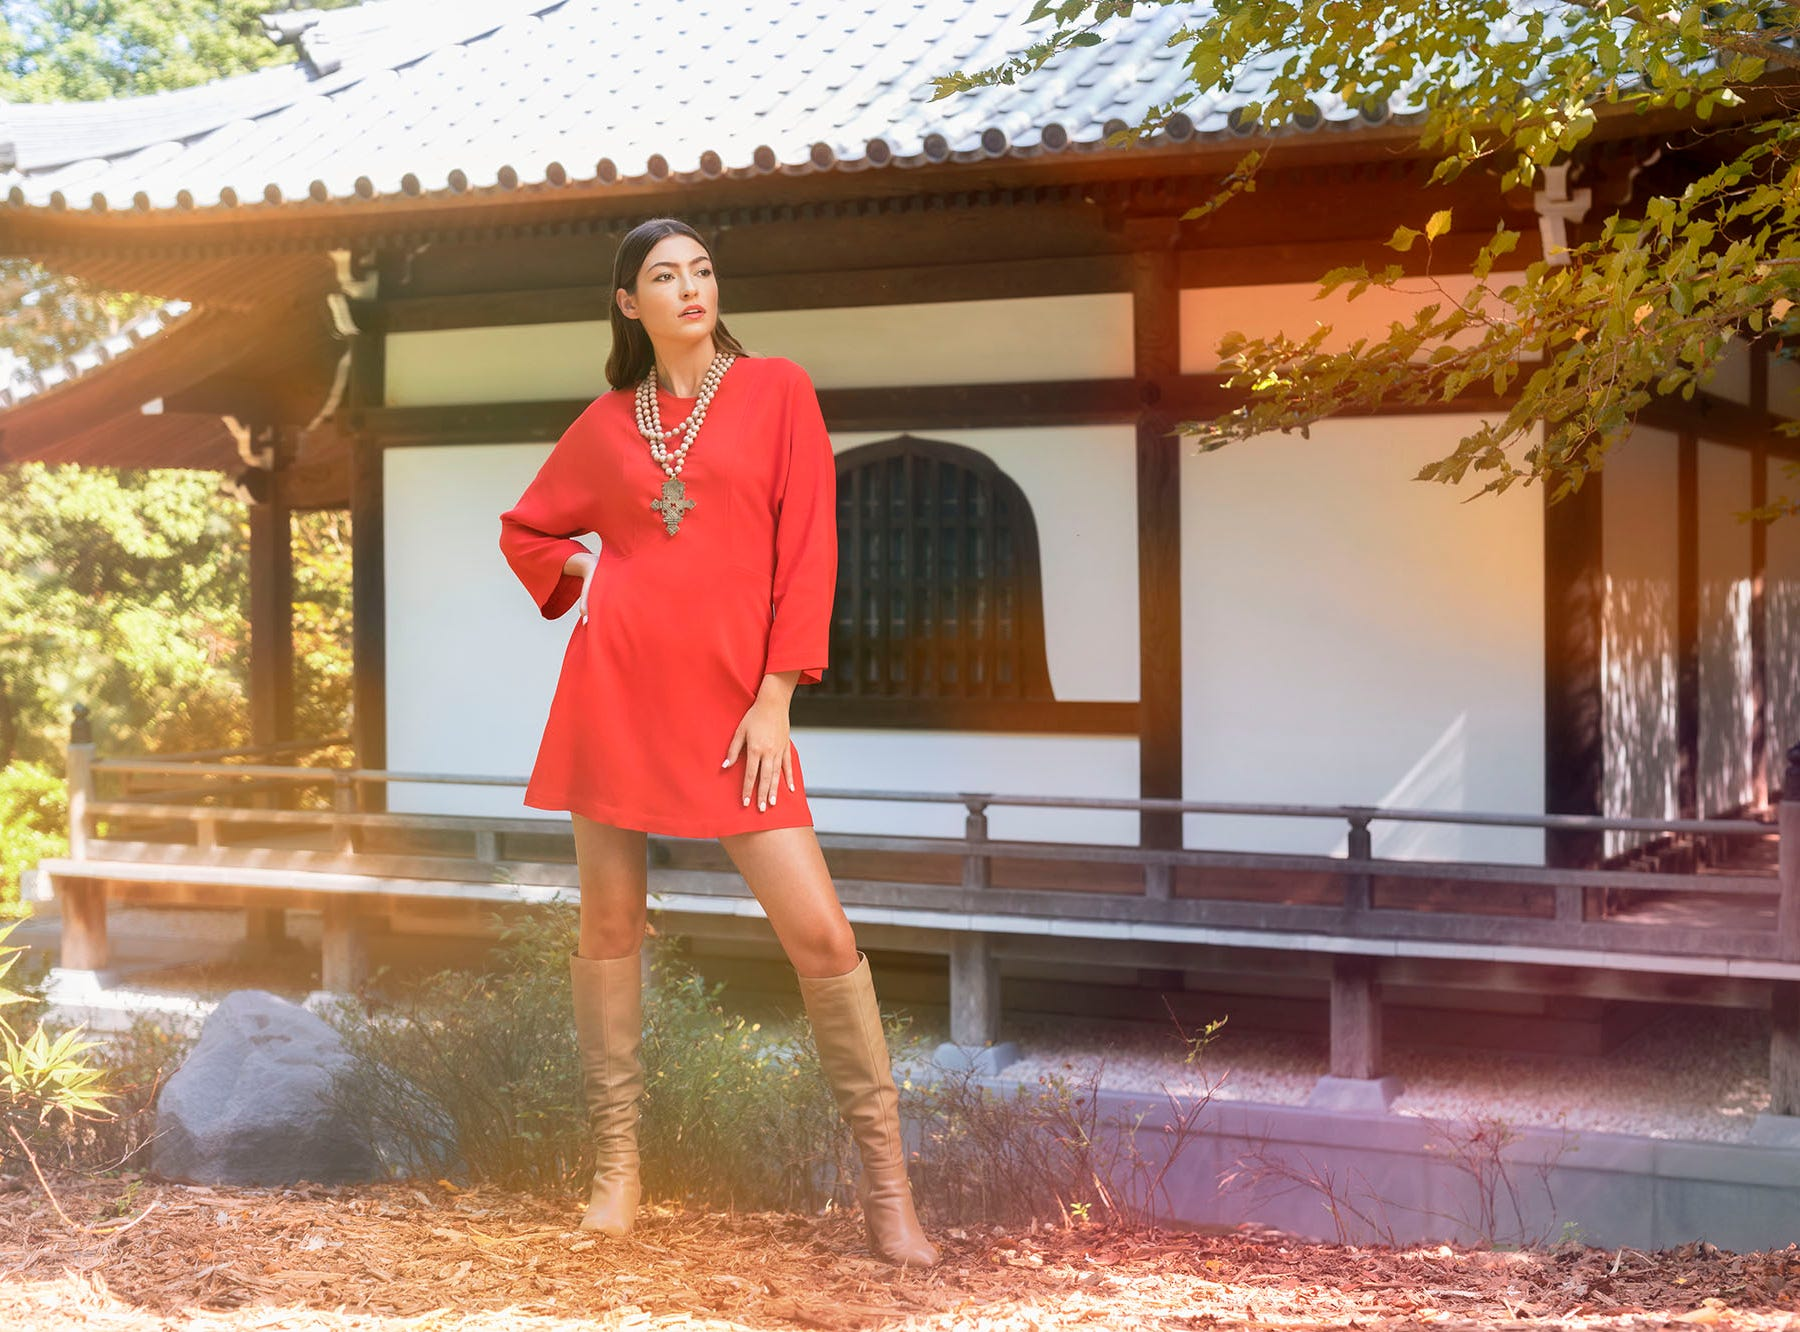 Red Dress: A.L.C., Twill Knee High Boots: Marc Fisher Ltd., Muse Statement Necklace: Shanlu, Monkees of the West End Stylist: Ann Ricker Hair and makeup: Sophie Wilson Model: Haylee Location: Special thanks to Furman University for the use of Roe Art Building, The Place of Peace and the Asia Garden.